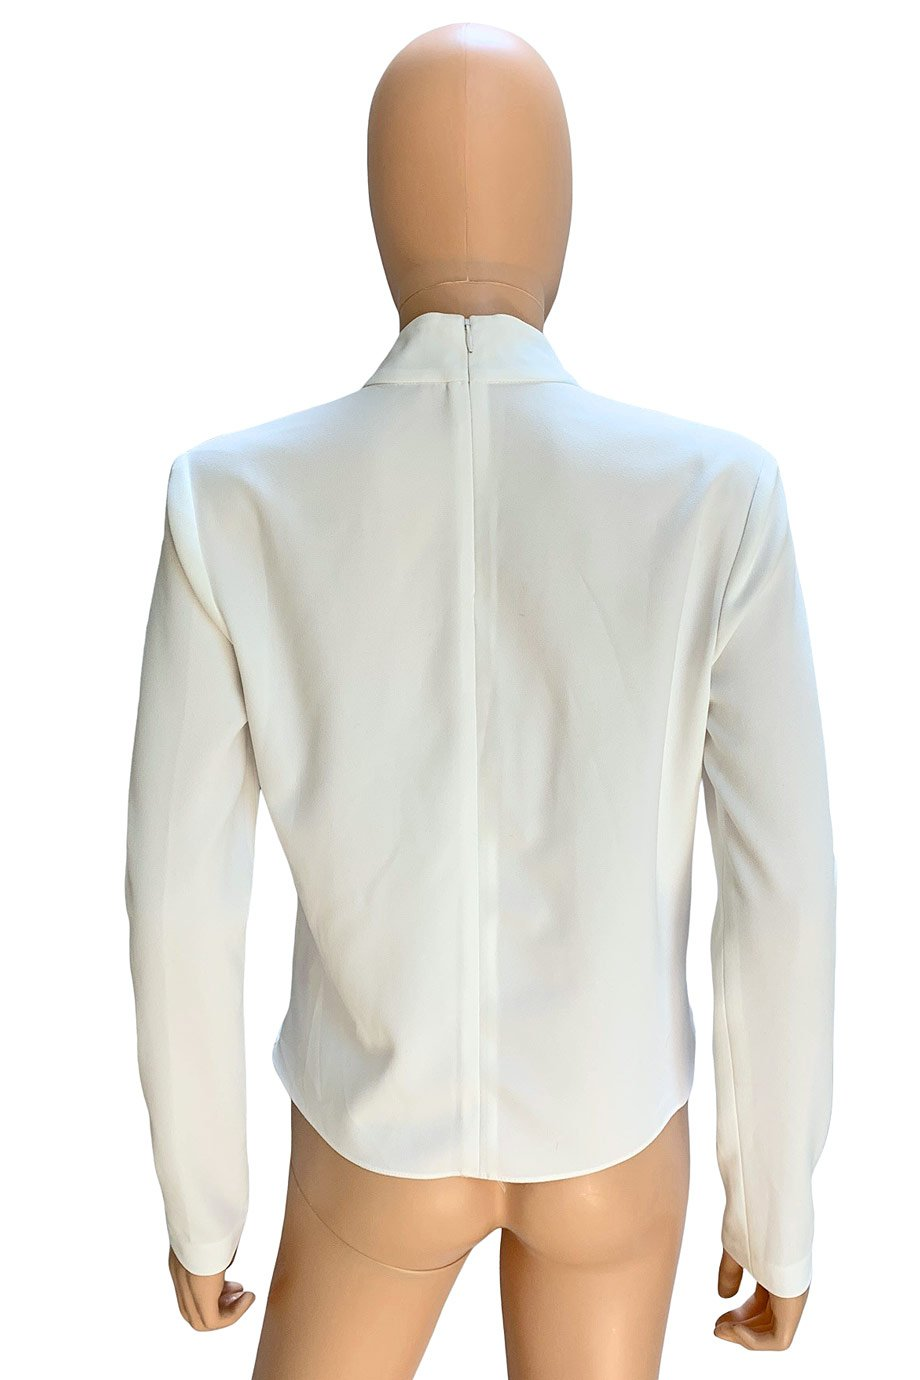 Intermix White Crepe Georgette Long Sleeve Cut-Out Top / Sz P